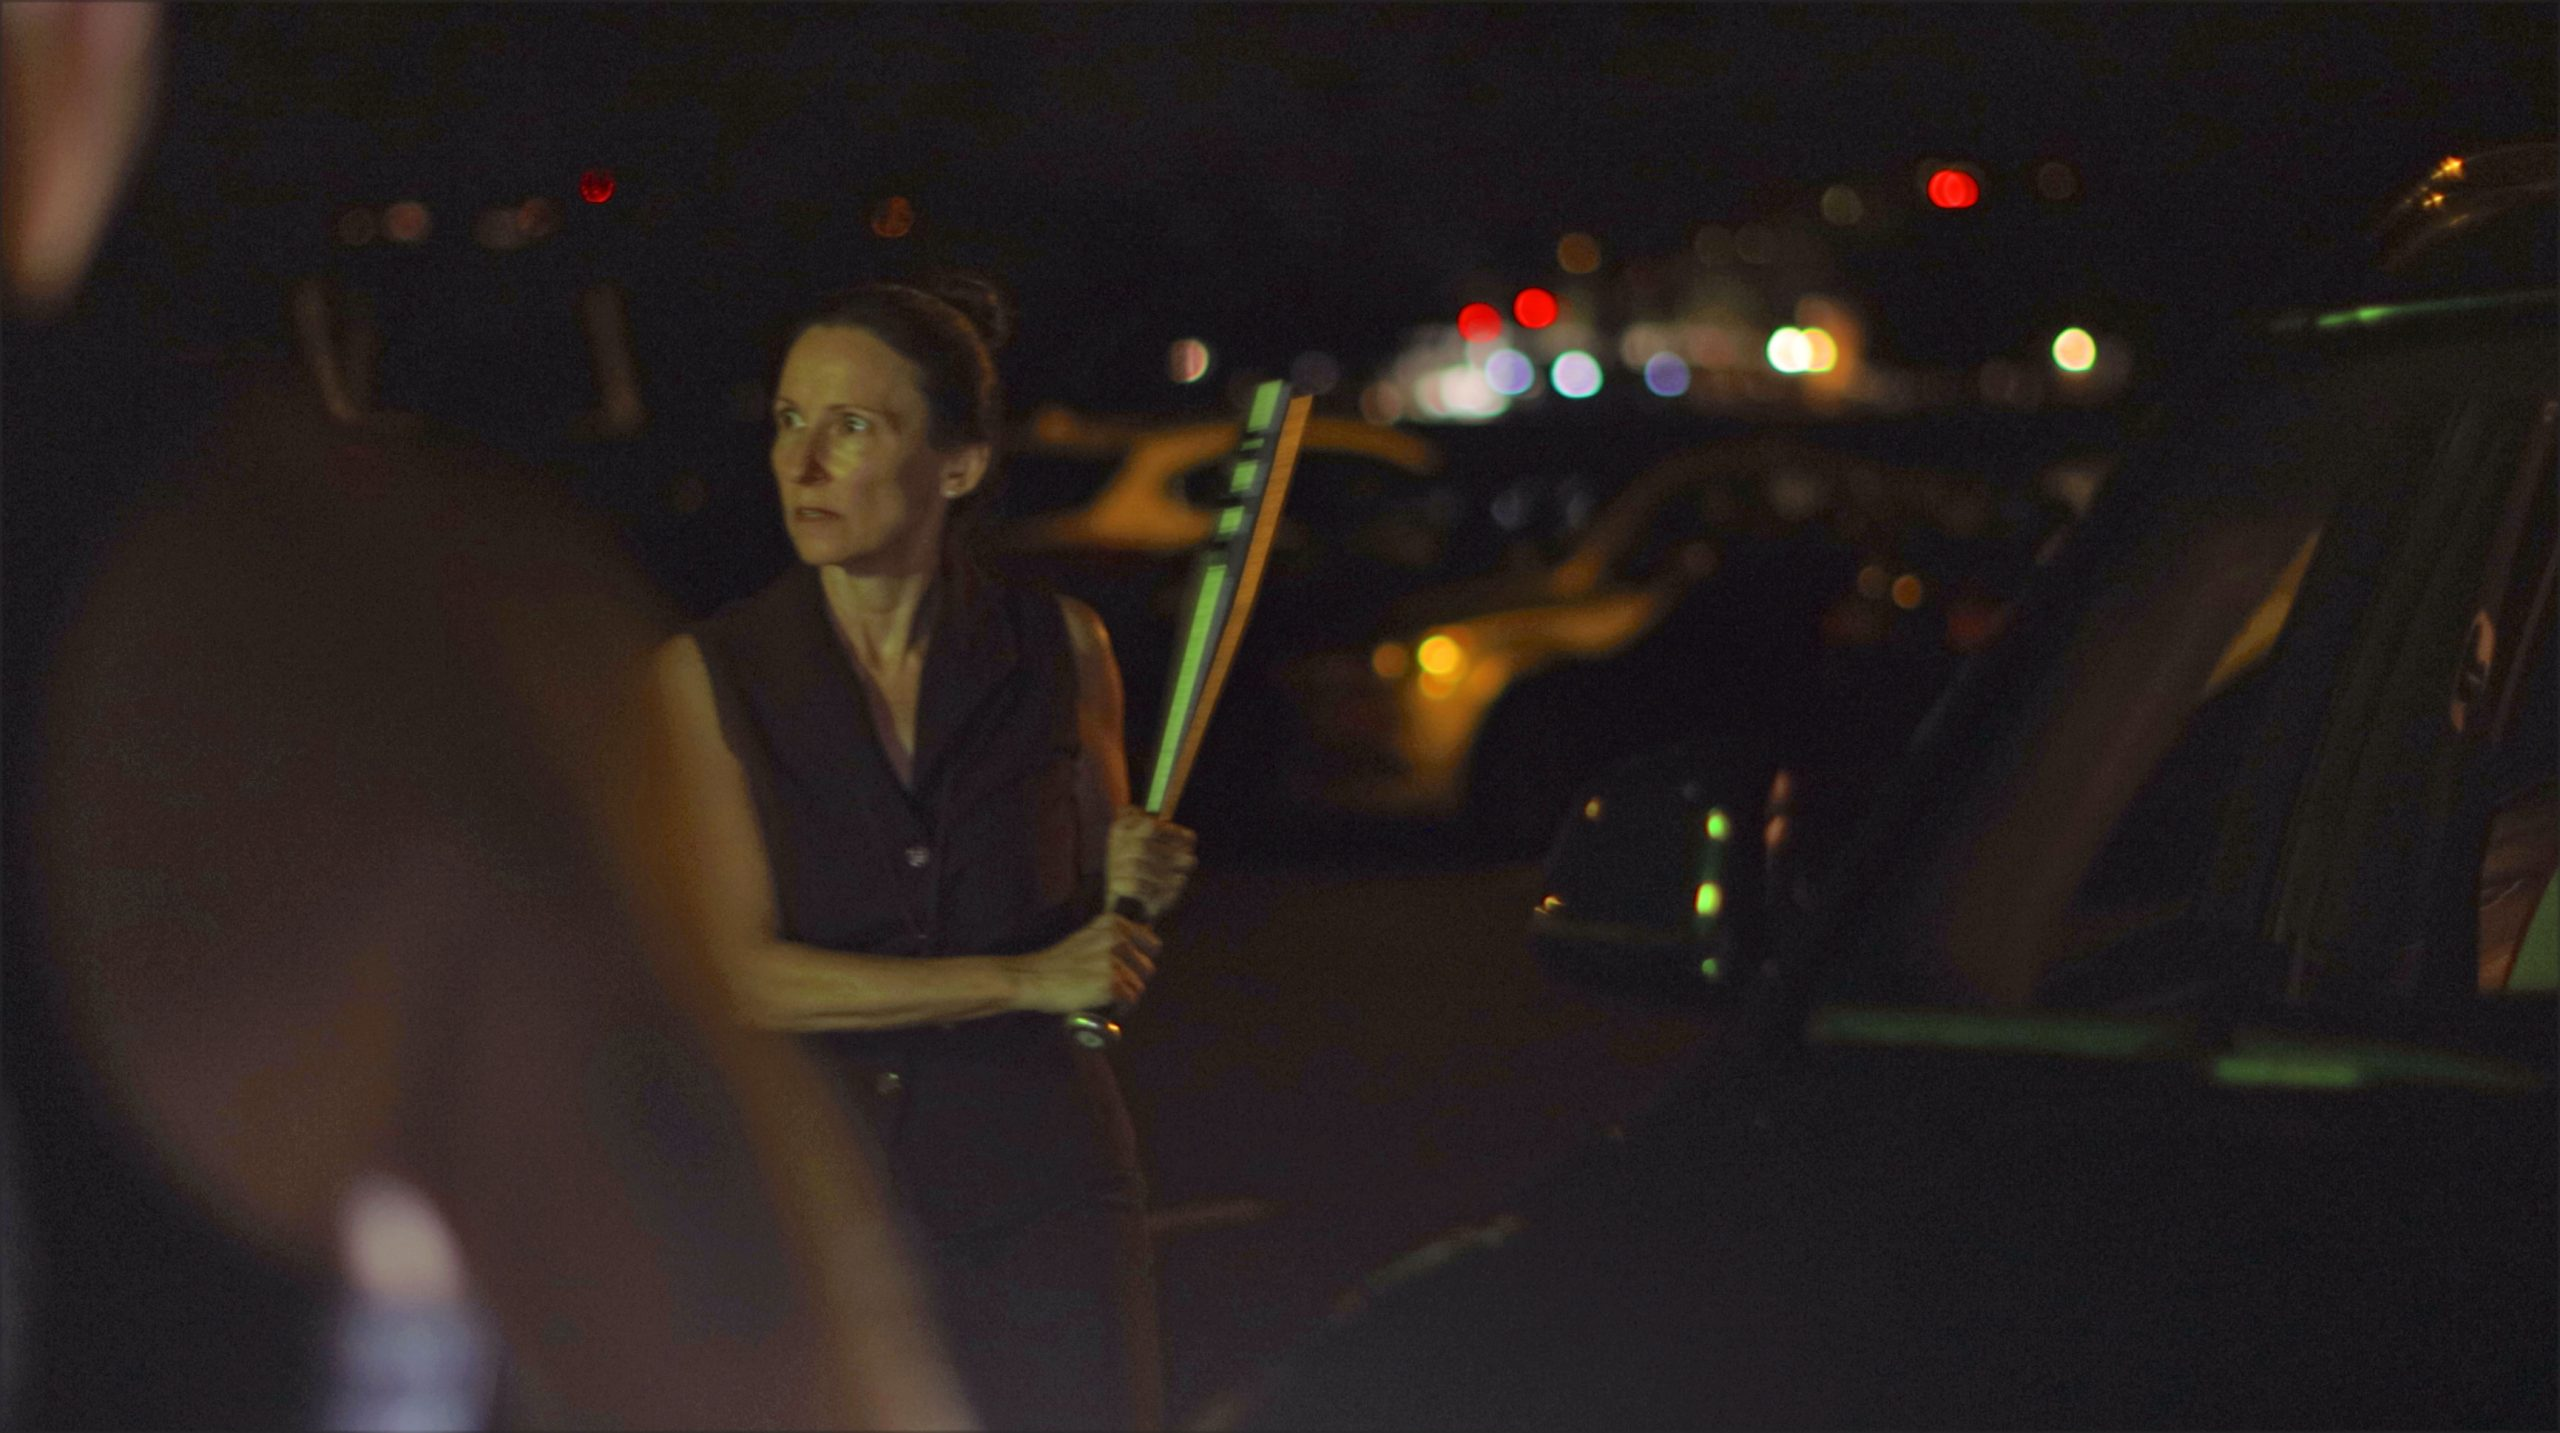 Justina Mattos as Nell holds a bat to protect Oee.